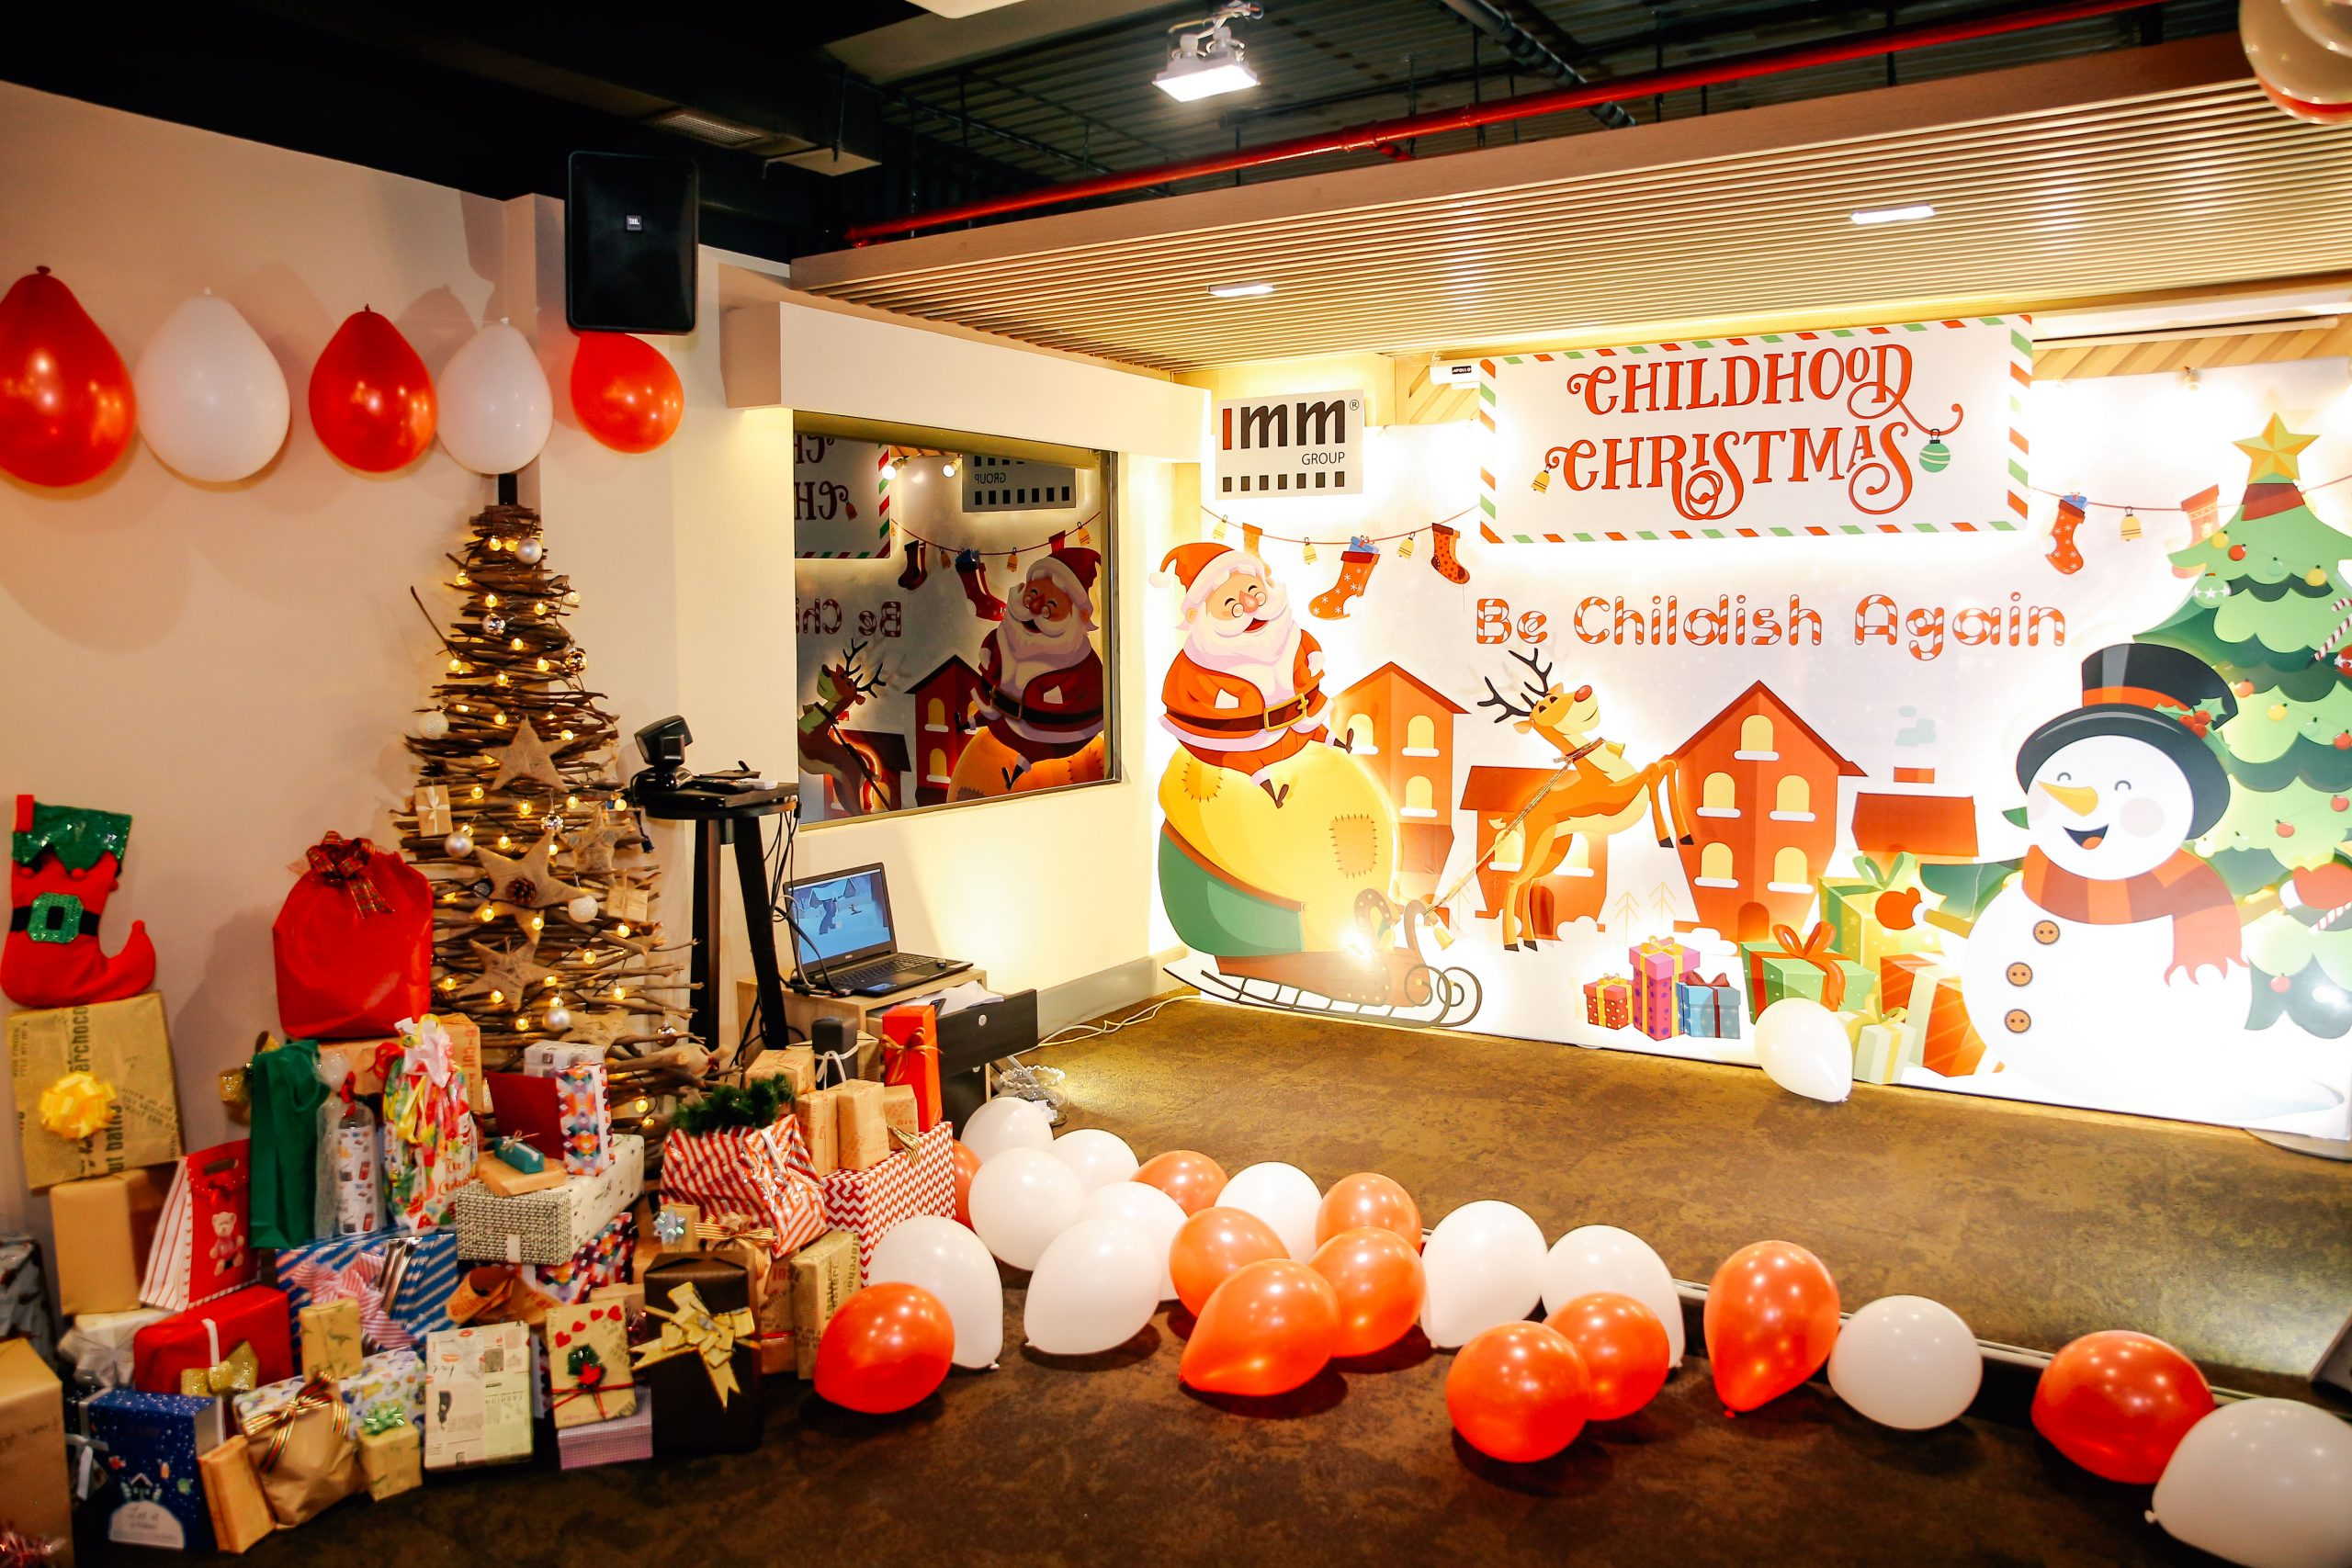 Back to childhood again with CHILDHOOD CHRISTMAS at IMM GROUP